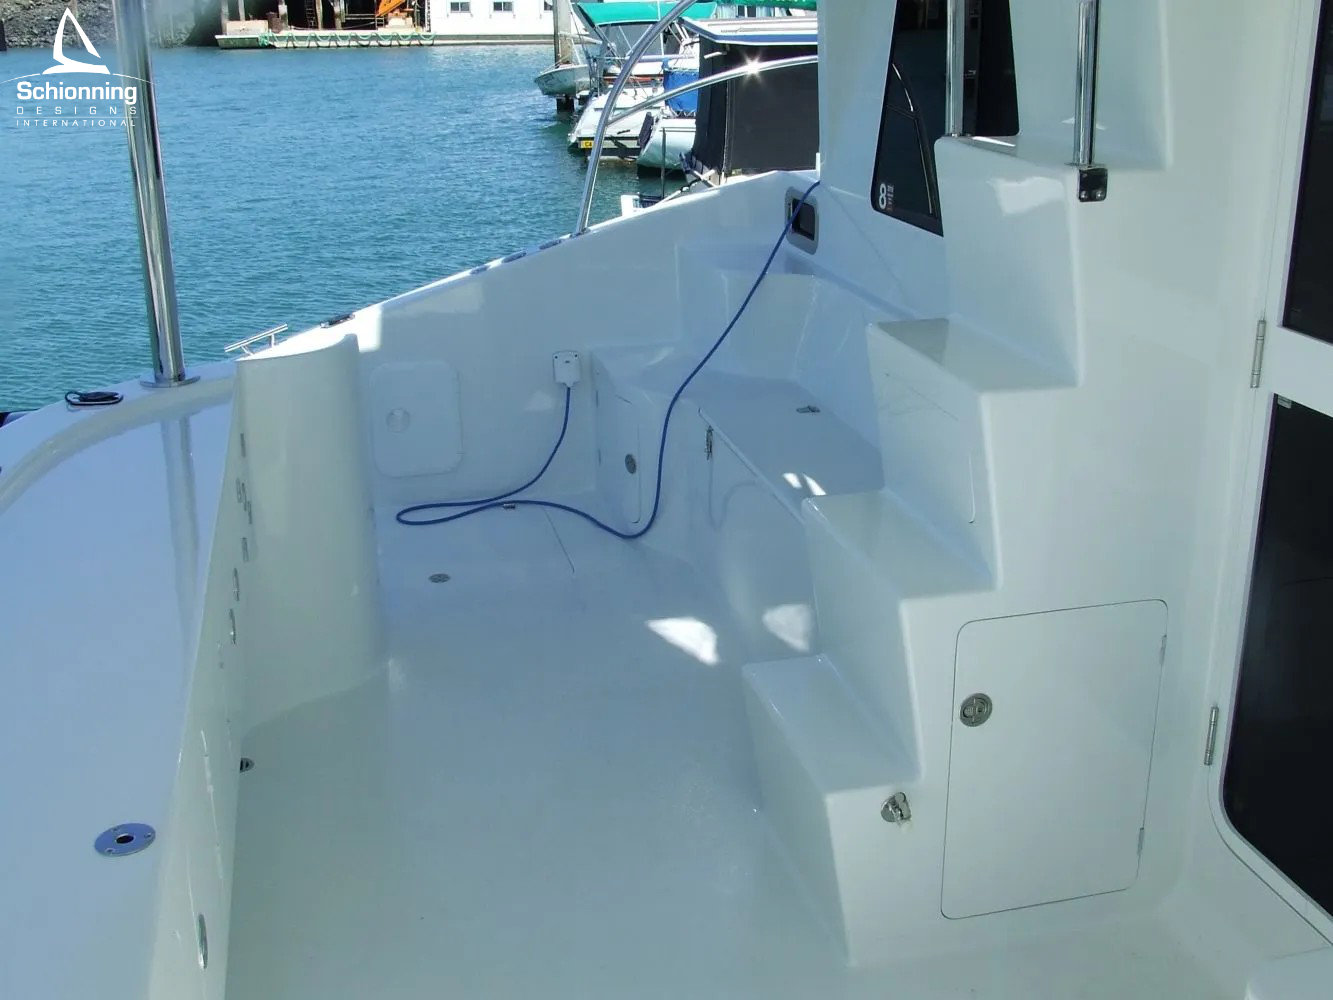 Ray Boat In skipSDI - Schionning Designs International Growler 950 VT